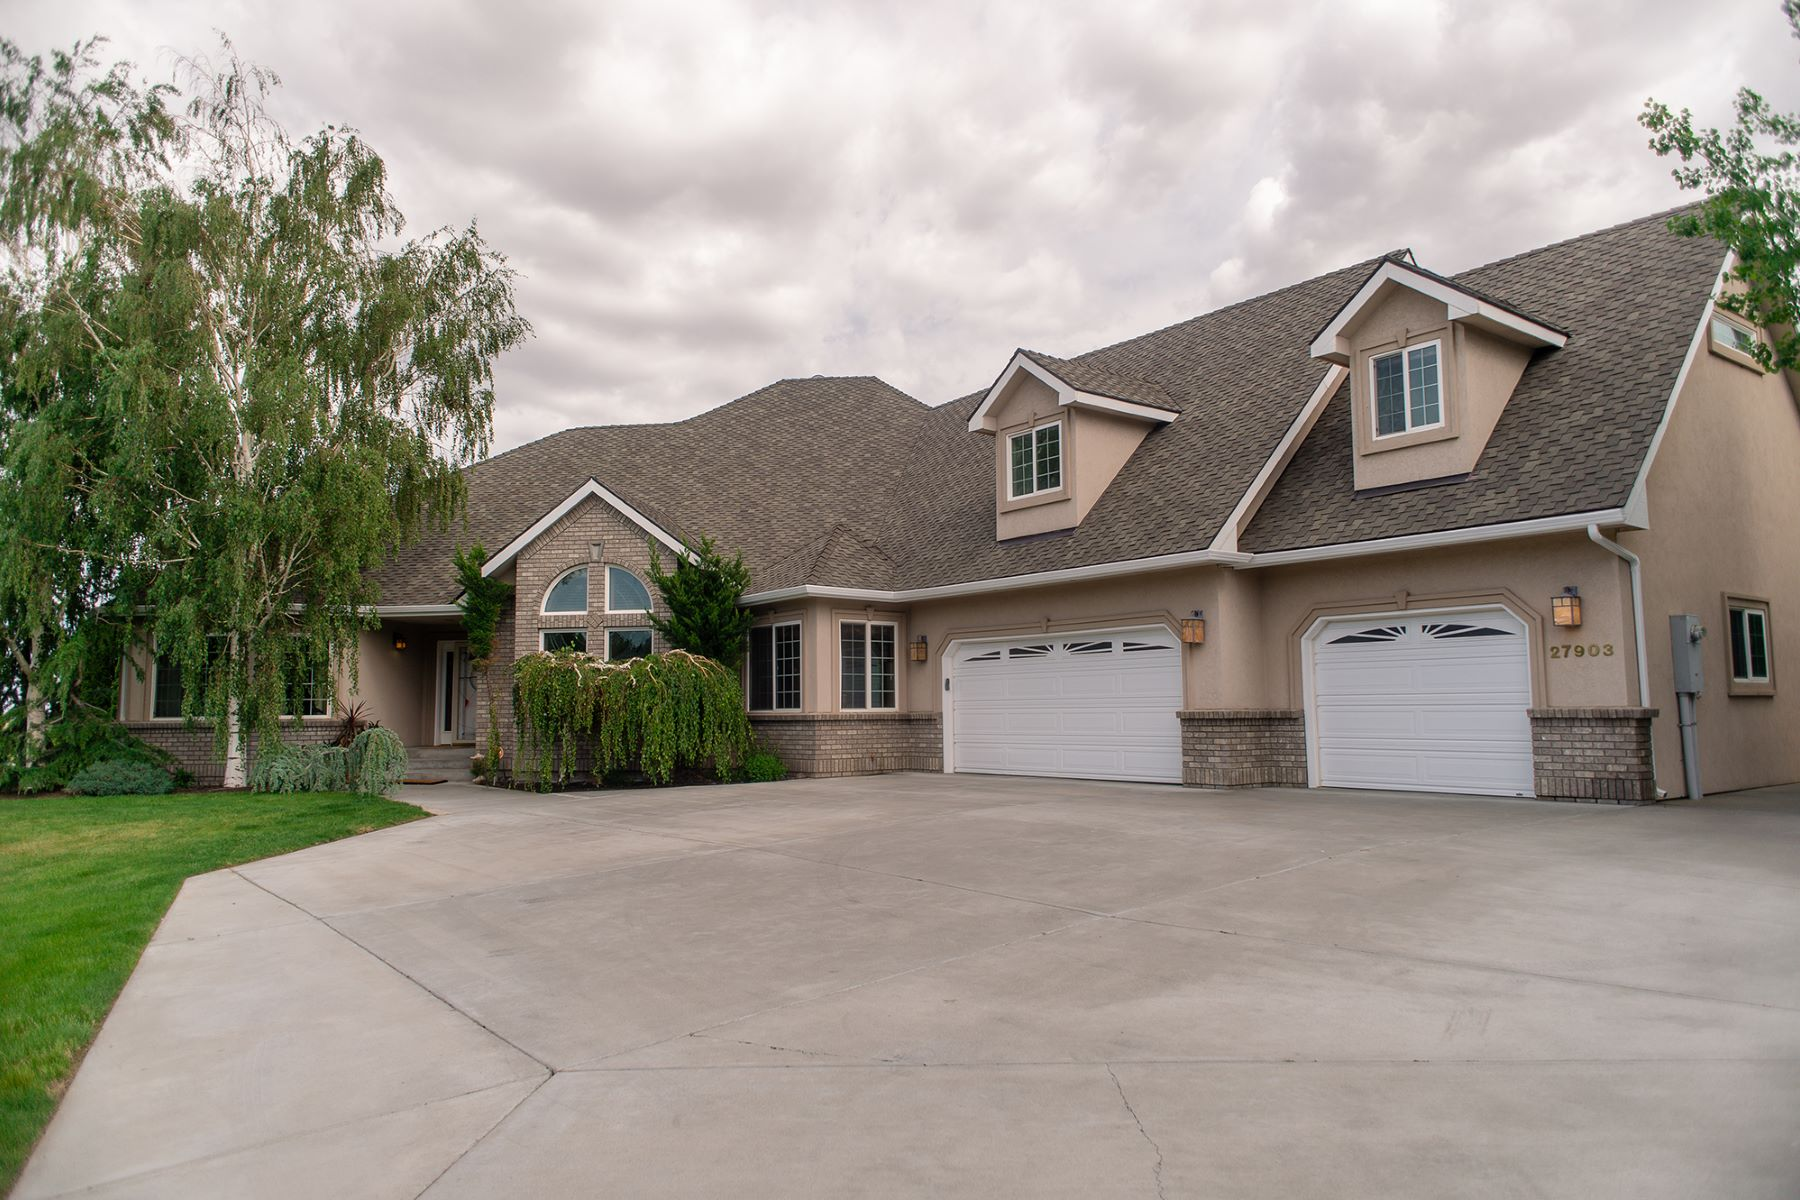 Single Family Home for Sale at Country Estate on 4.55 acres 27903 S 816 PRSE Kennewick, Washington 99338 United States